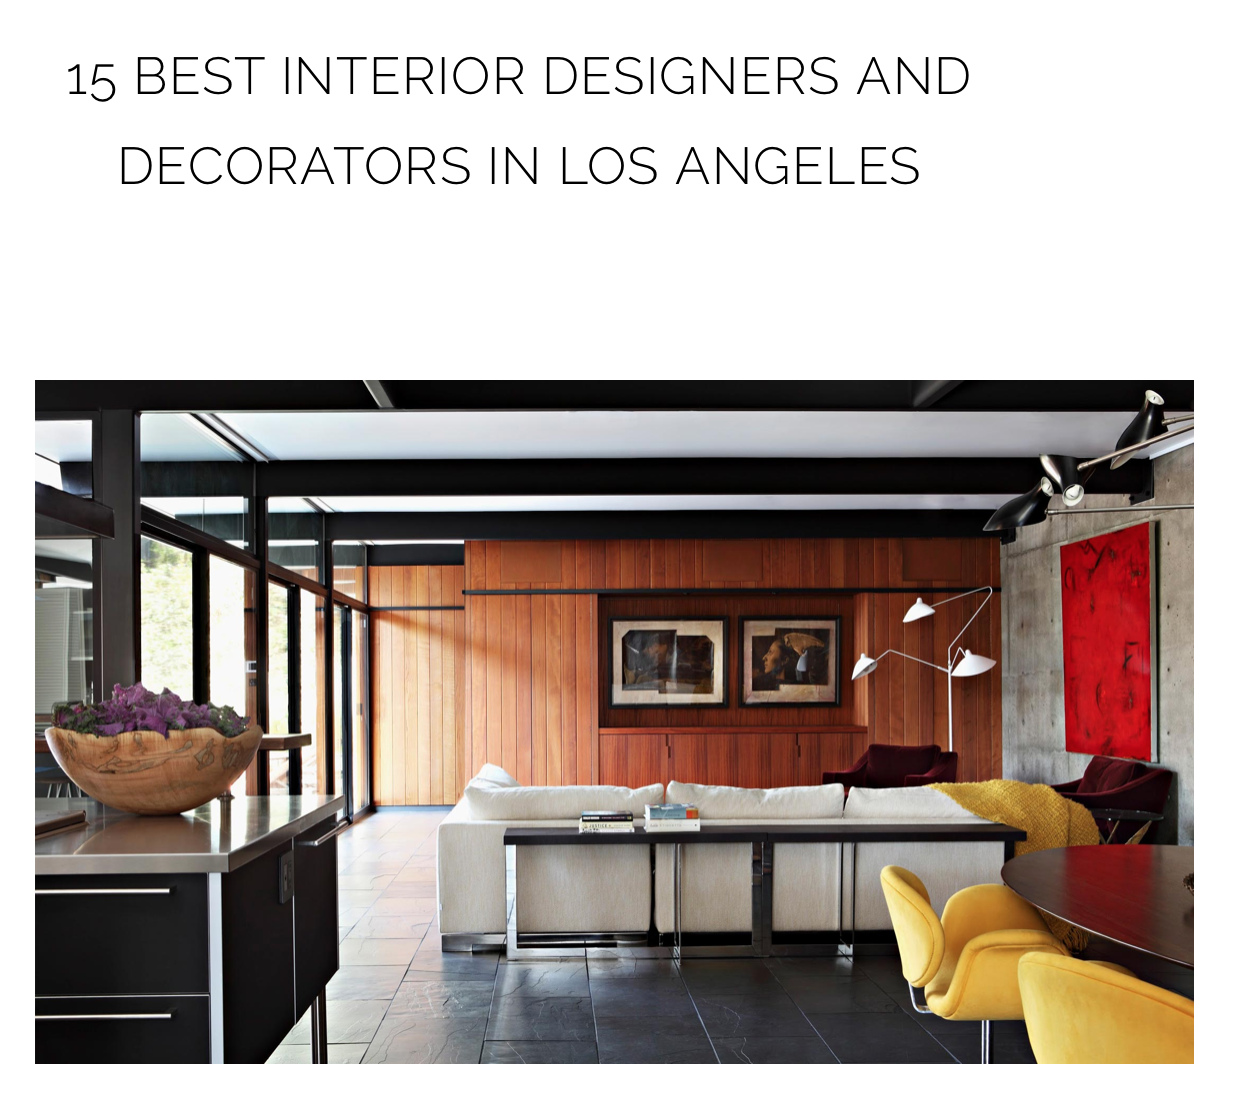 Lori Dennis Best Interior Design Firm in Los Angeles